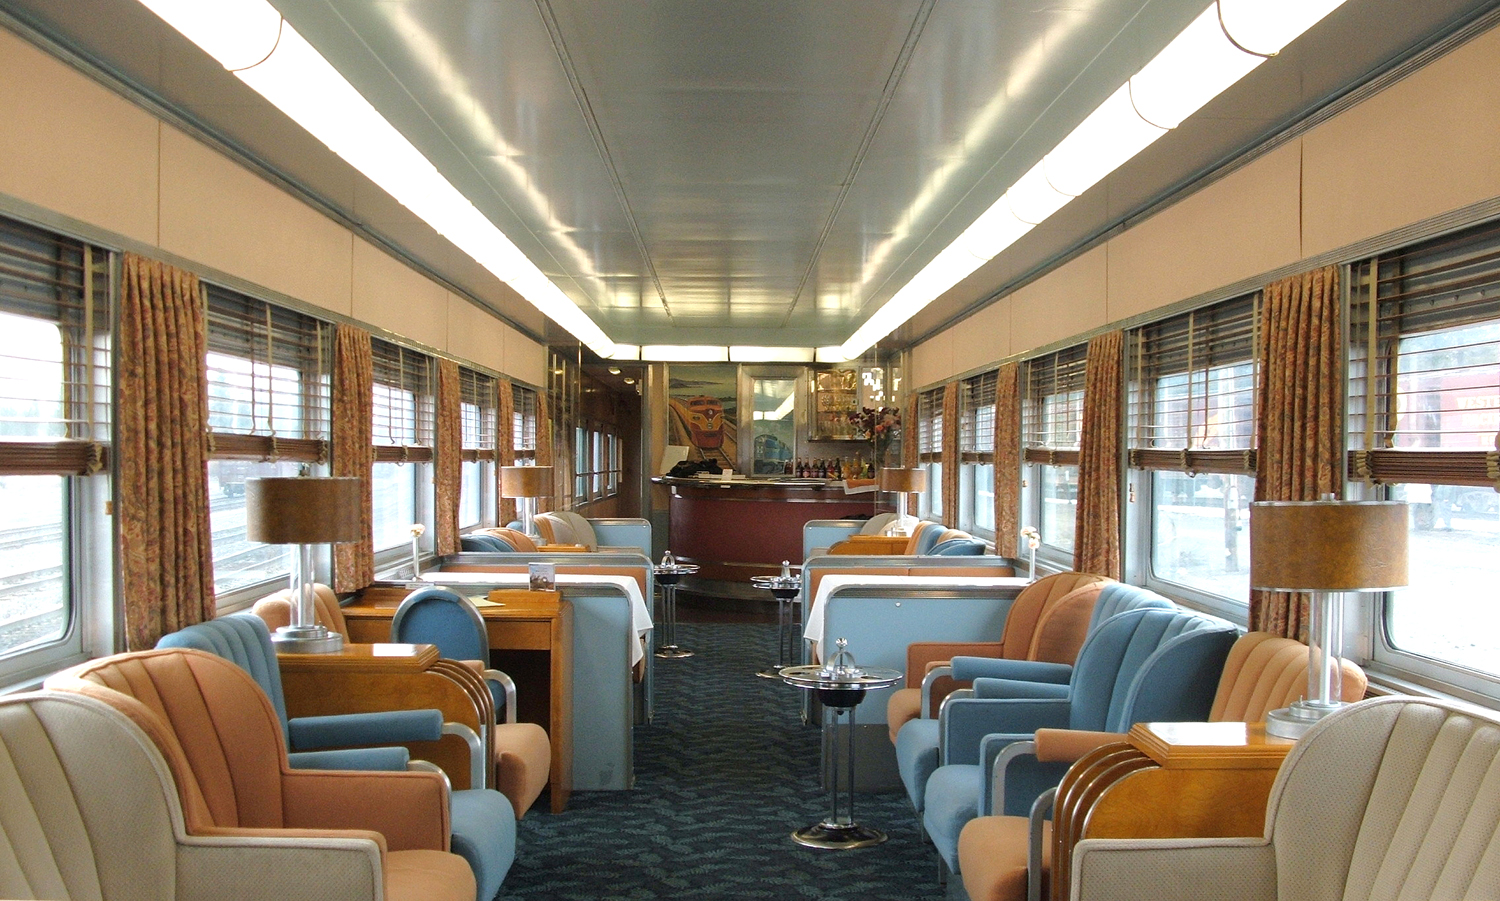 Luxury Train Club Private Rail Cars For Hire